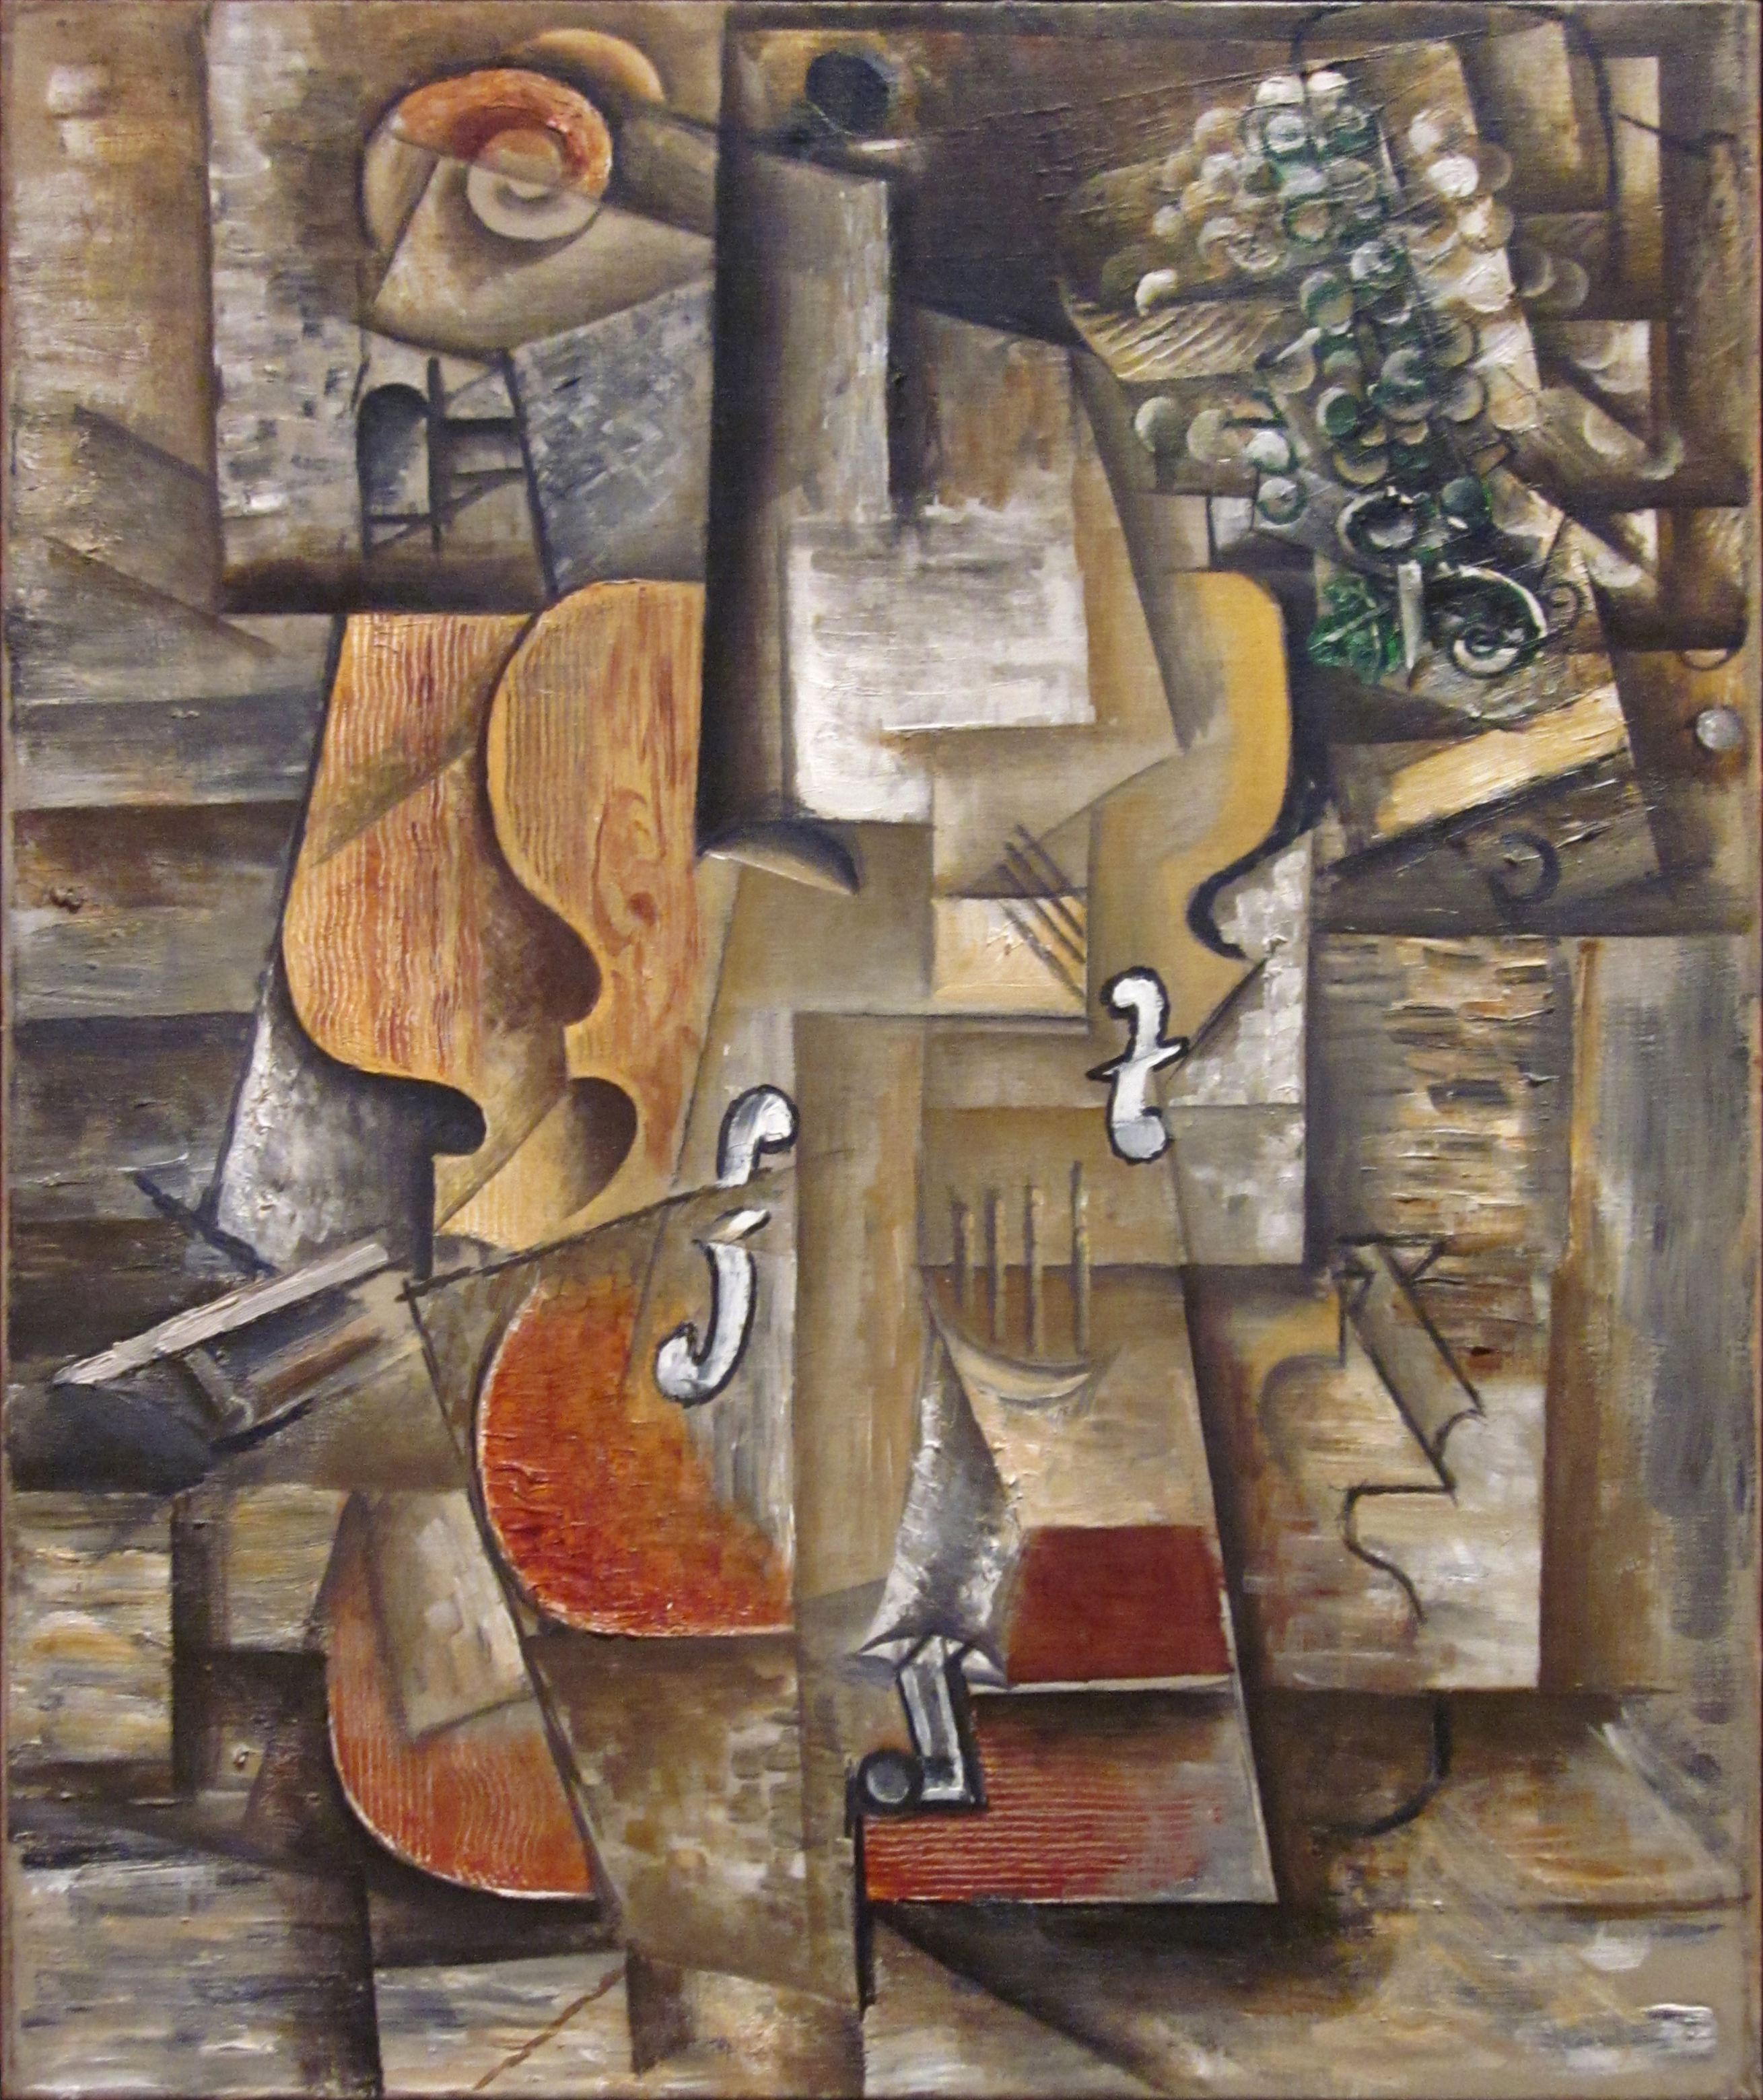 file pablo picasso 1912 violin and grapes oil on canvas 61 x 50 8 cm museum of modern art. Black Bedroom Furniture Sets. Home Design Ideas